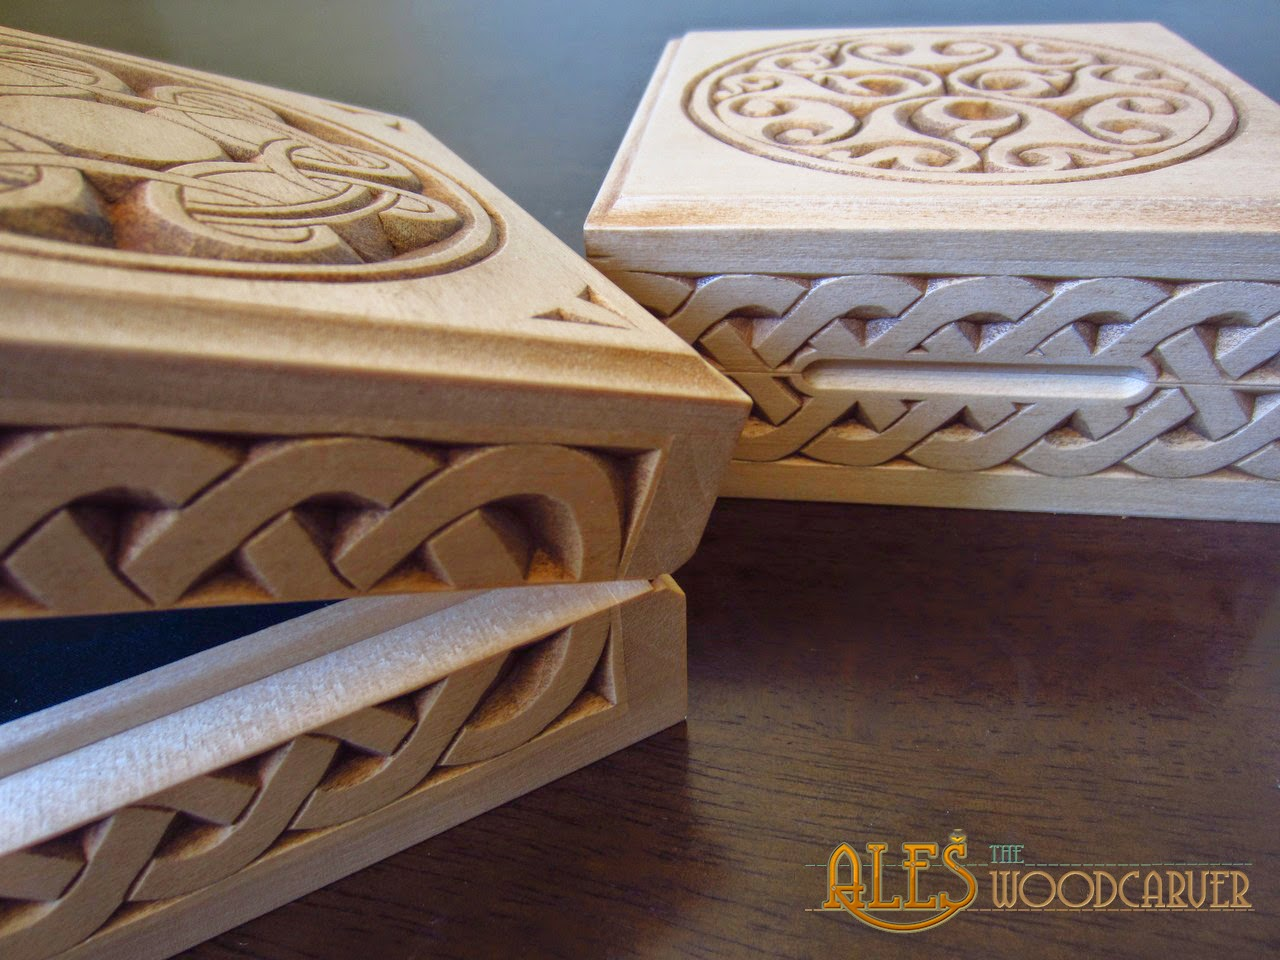 Ales the woodcarver trinket boxes with various celtic designs